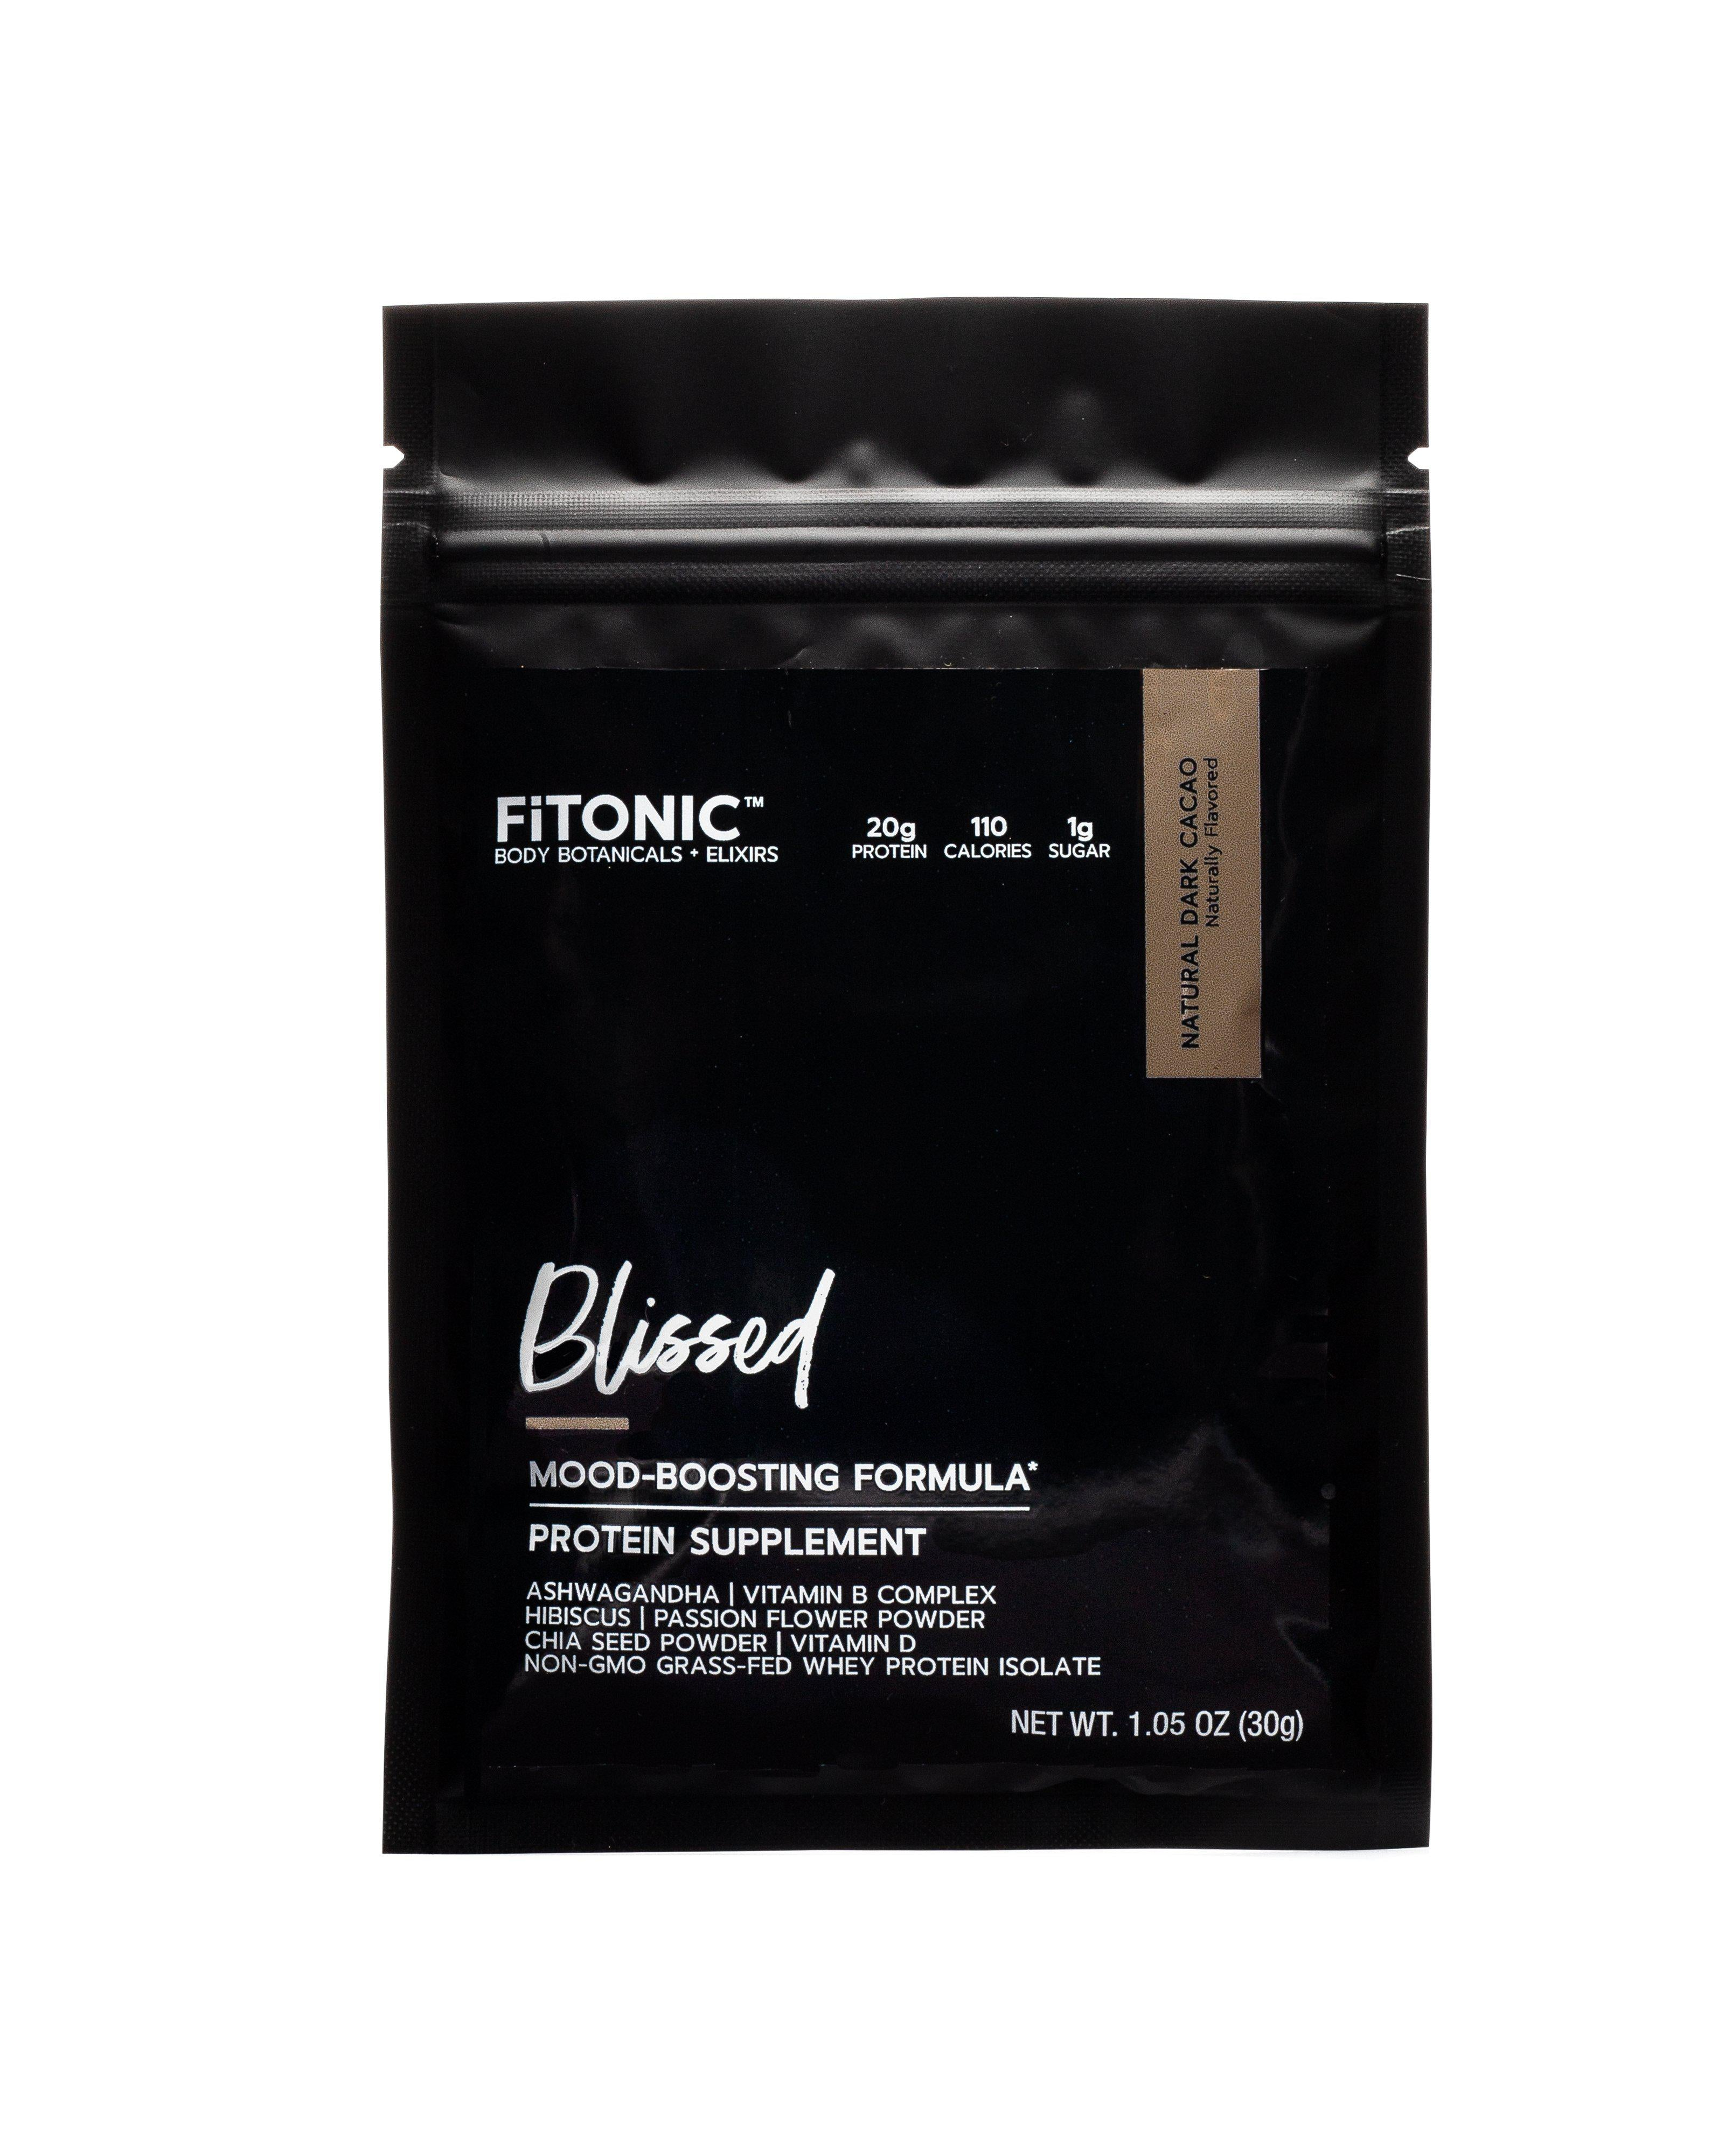 FiTONIC BLISSED - Single Serving